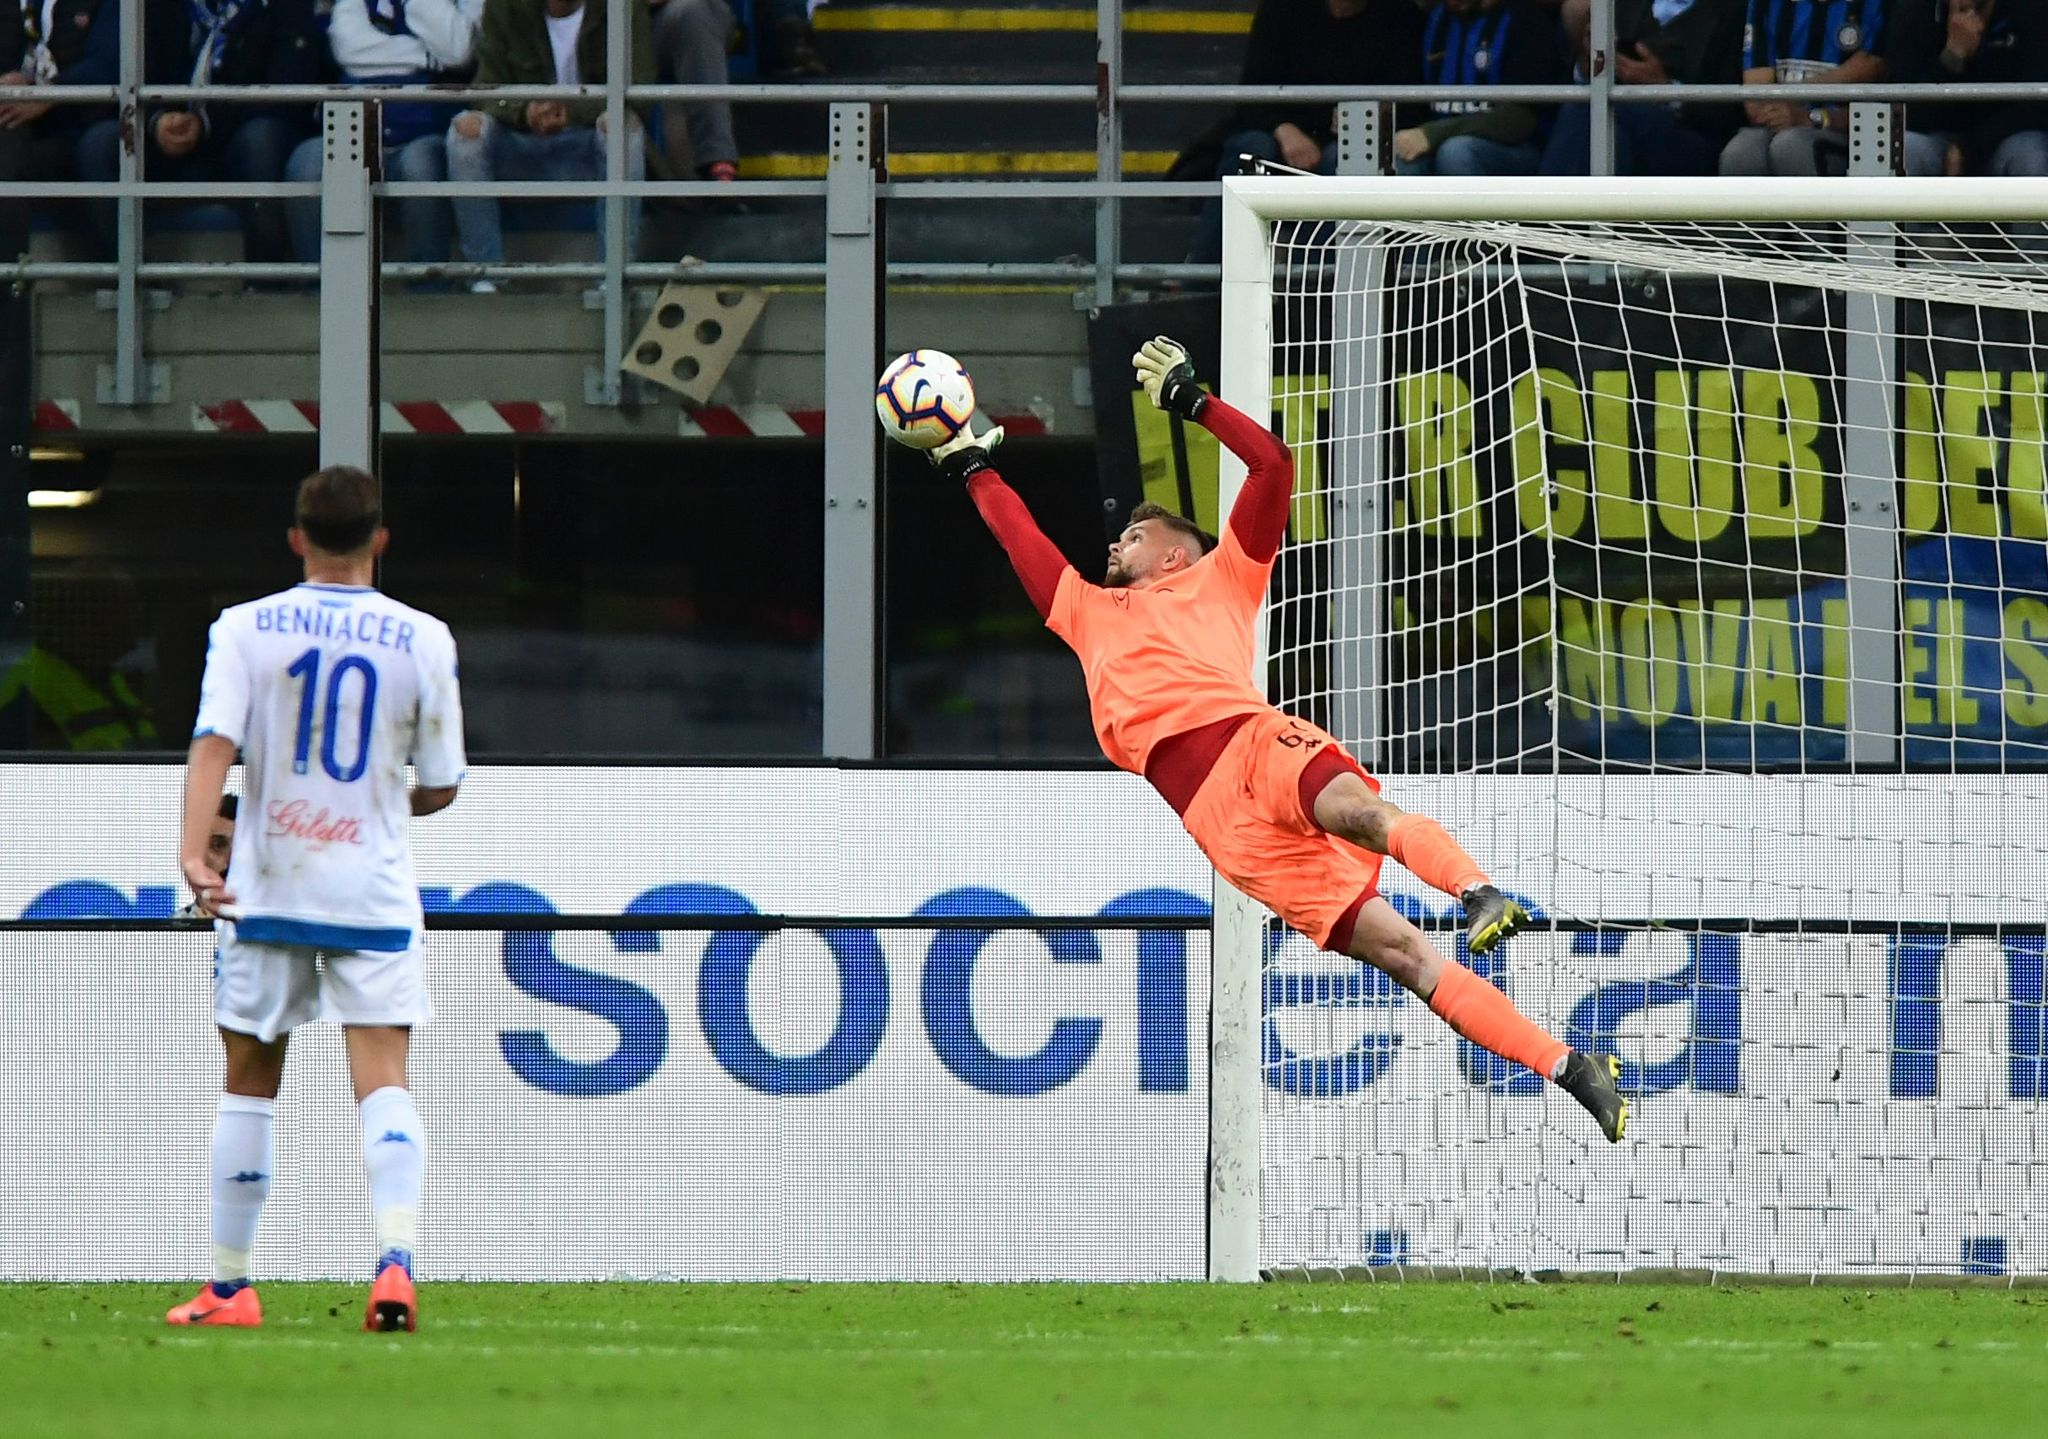 <HIT>Empoli</HIT>s goalkeeper Bartlomiej Dragowski stretches to stop the ball during the Italian Serie A football match Inter Milan vs <HIT>Empoli</HIT> on May 26, 2019 at the San Siro stadium in Milan. (Photo by Miguel MEDINA / AFP)